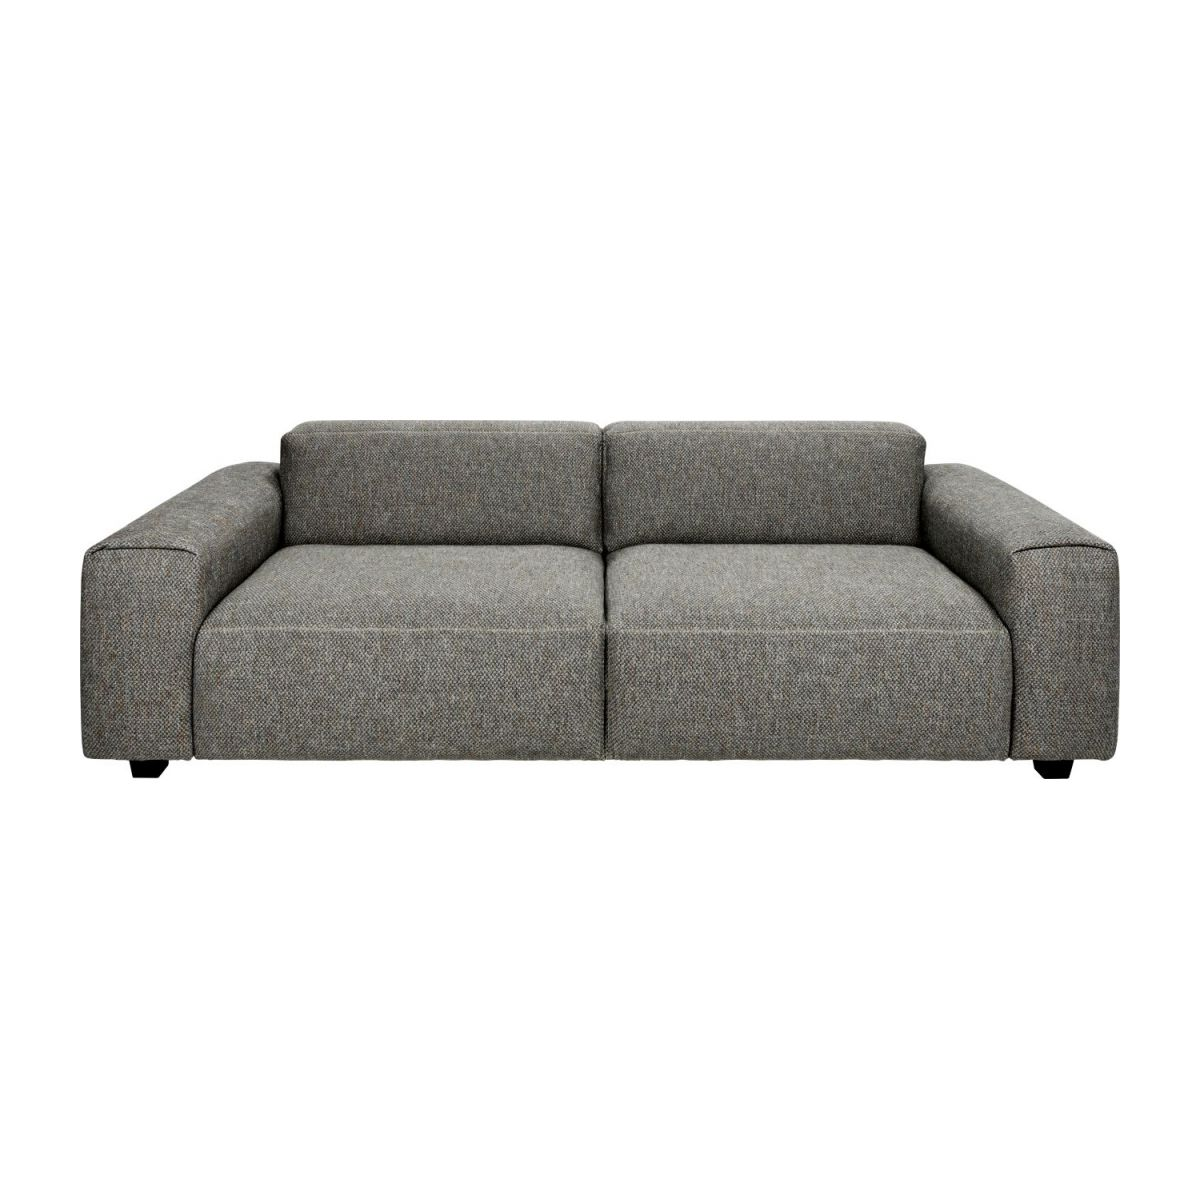 4-seter sofa, sort n°3